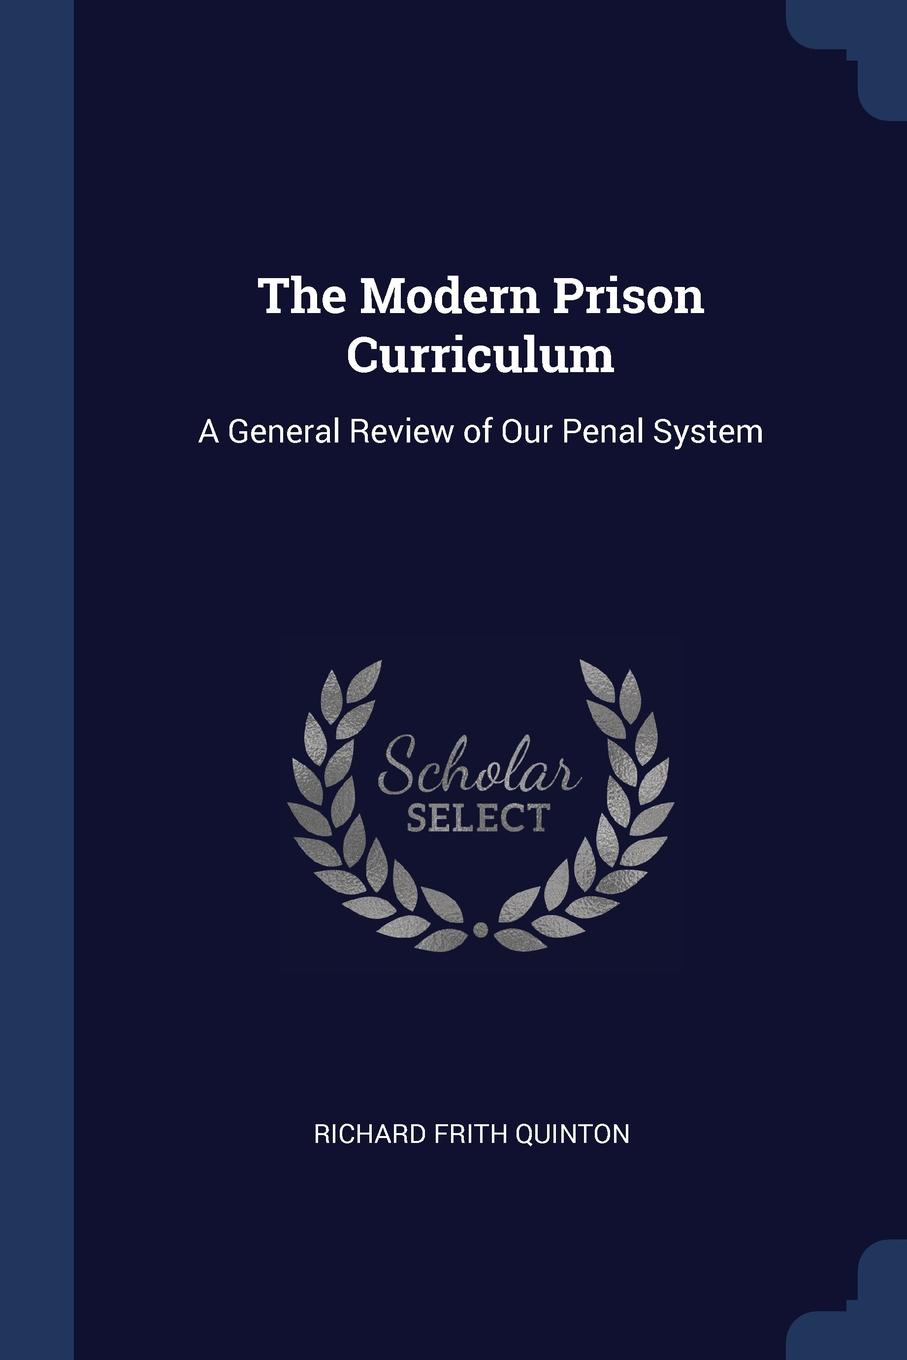 The Modern Prison Curriculum. A General Review of Our Penal System. Richard Frith Quinton